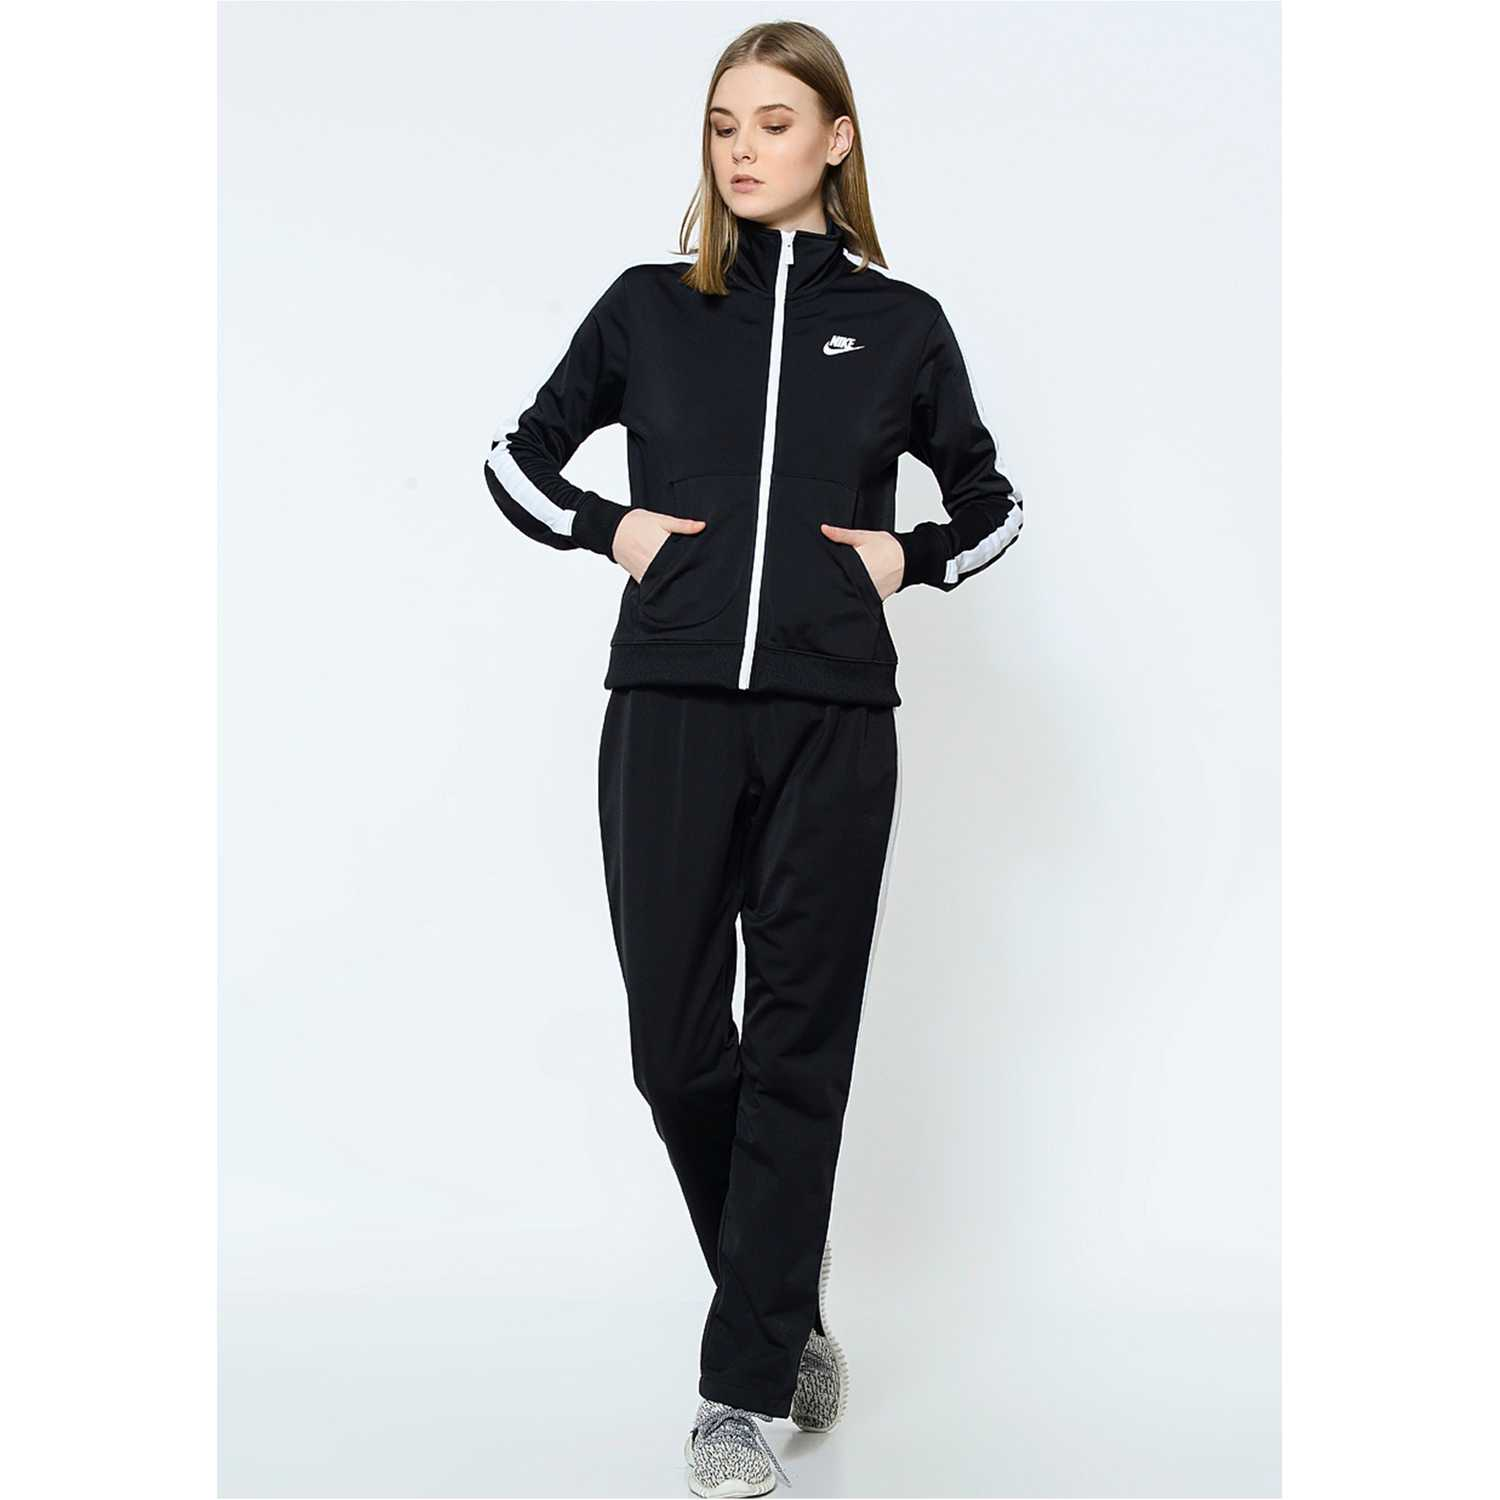 Buzo de Mujer Nike Negro / blanco wmns nsw trk suit pk oh